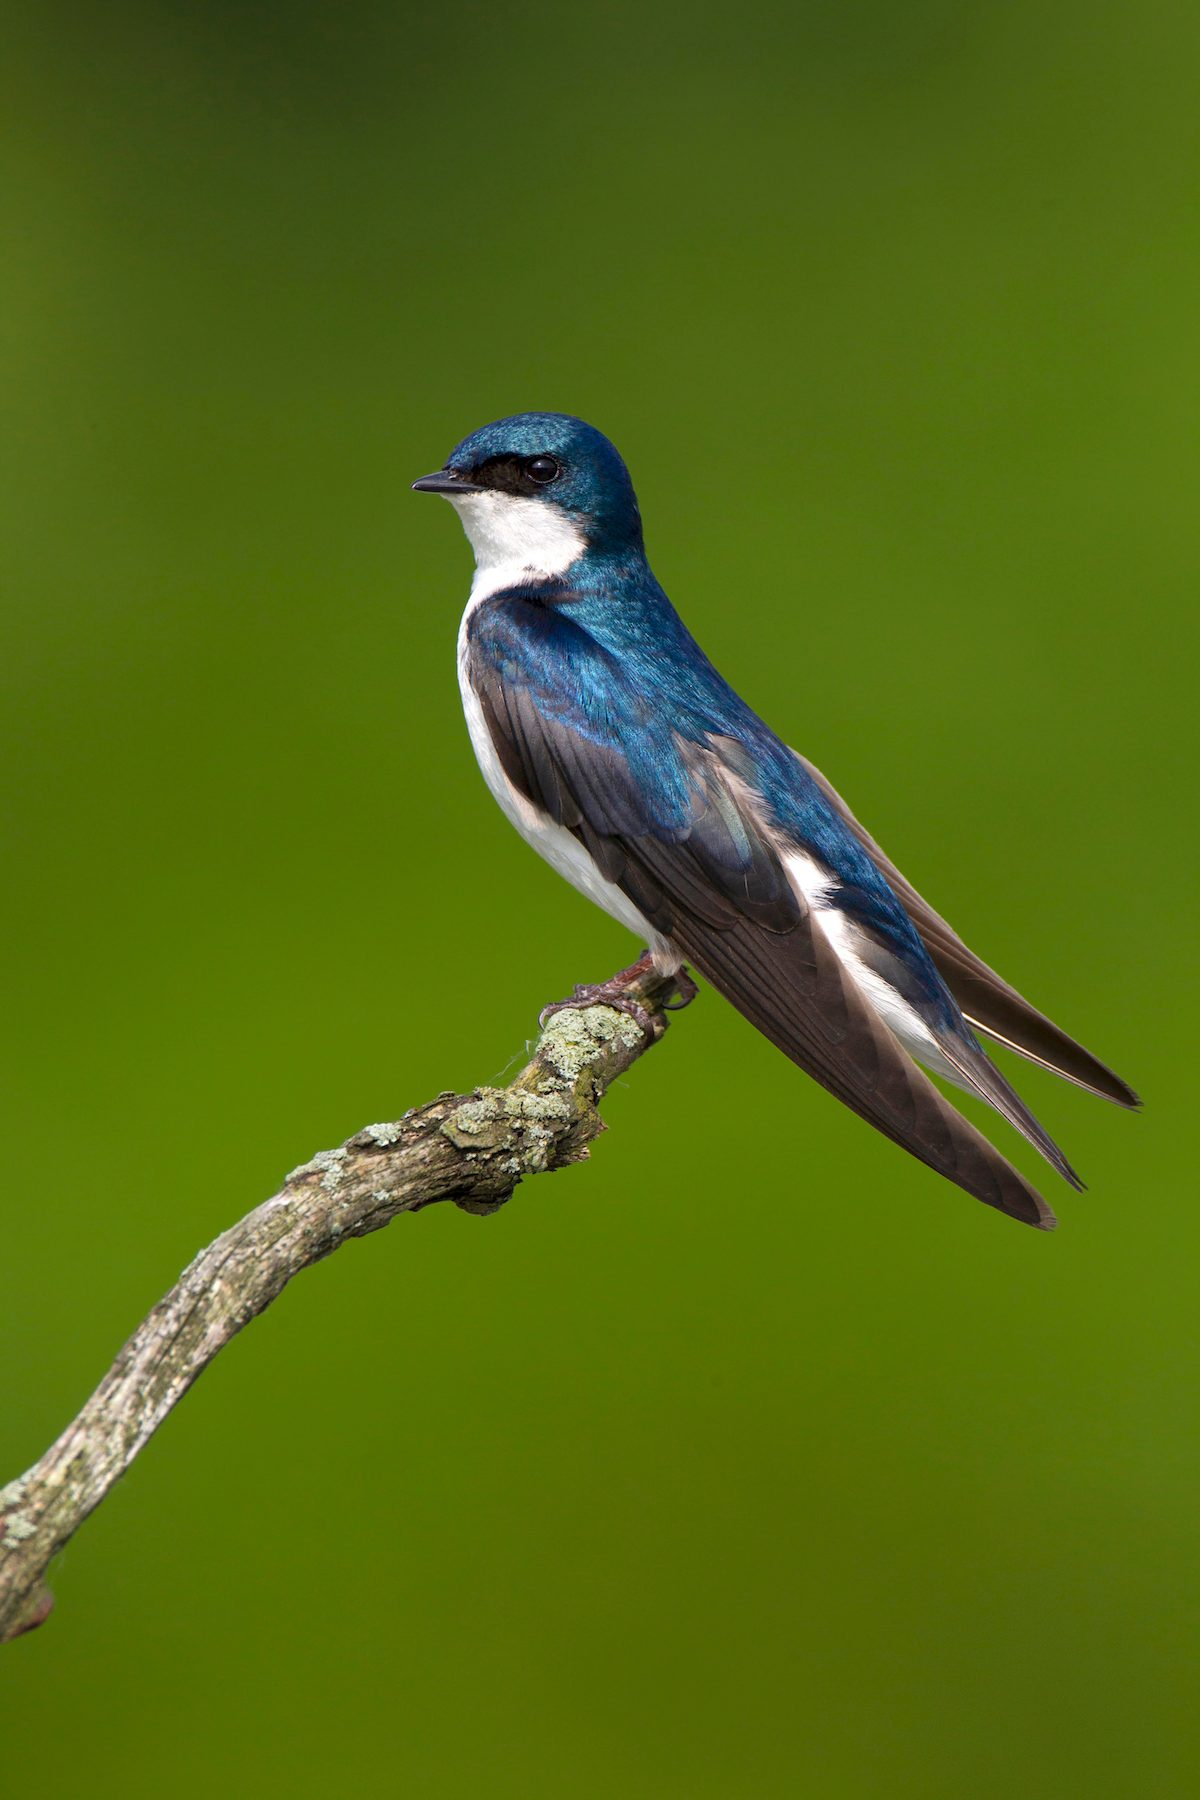 Tree swallow perched on branch.